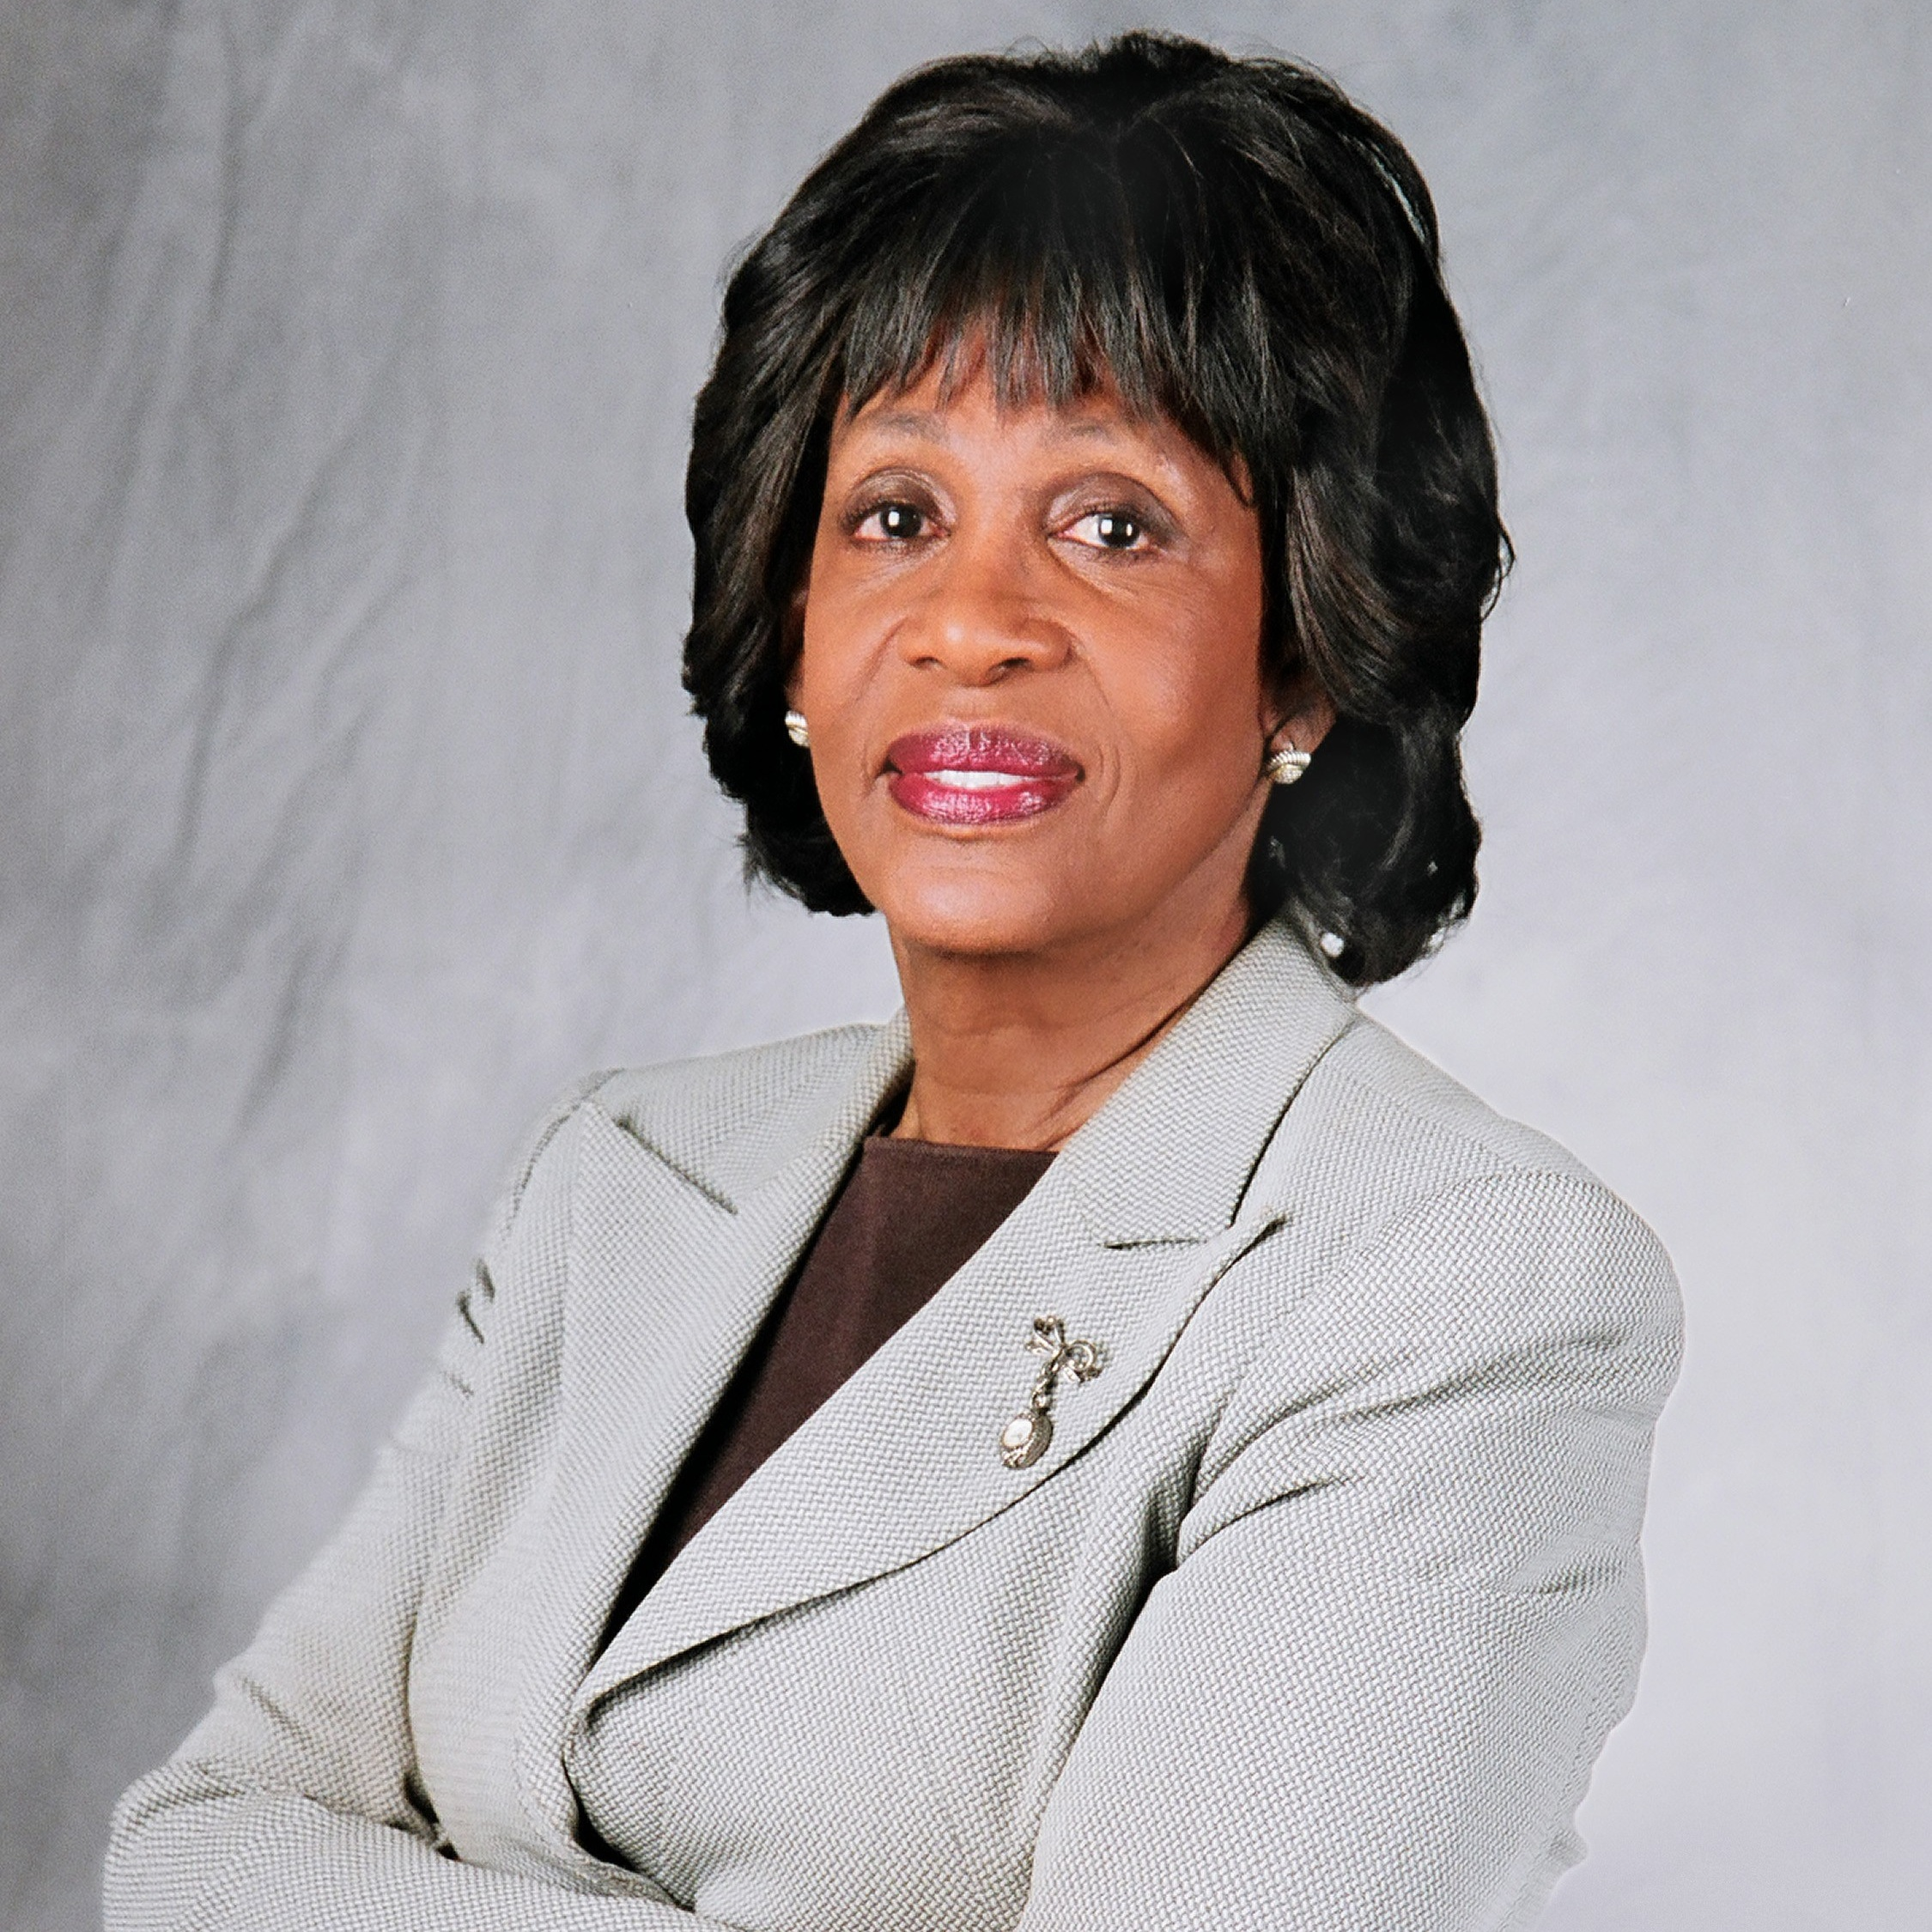 Congresswoman Maxine Waters - U.S. House of Representatives, 43rd District of CaliforniaLos Angeles Office:10124 S. Broadway, Suite 1Los Angeles, CA 90003Phone: (323) 757-8900Field Representative: Hamilton CloudHamilton.Cloud@mail.house.govhttp://www.house.gov/waters